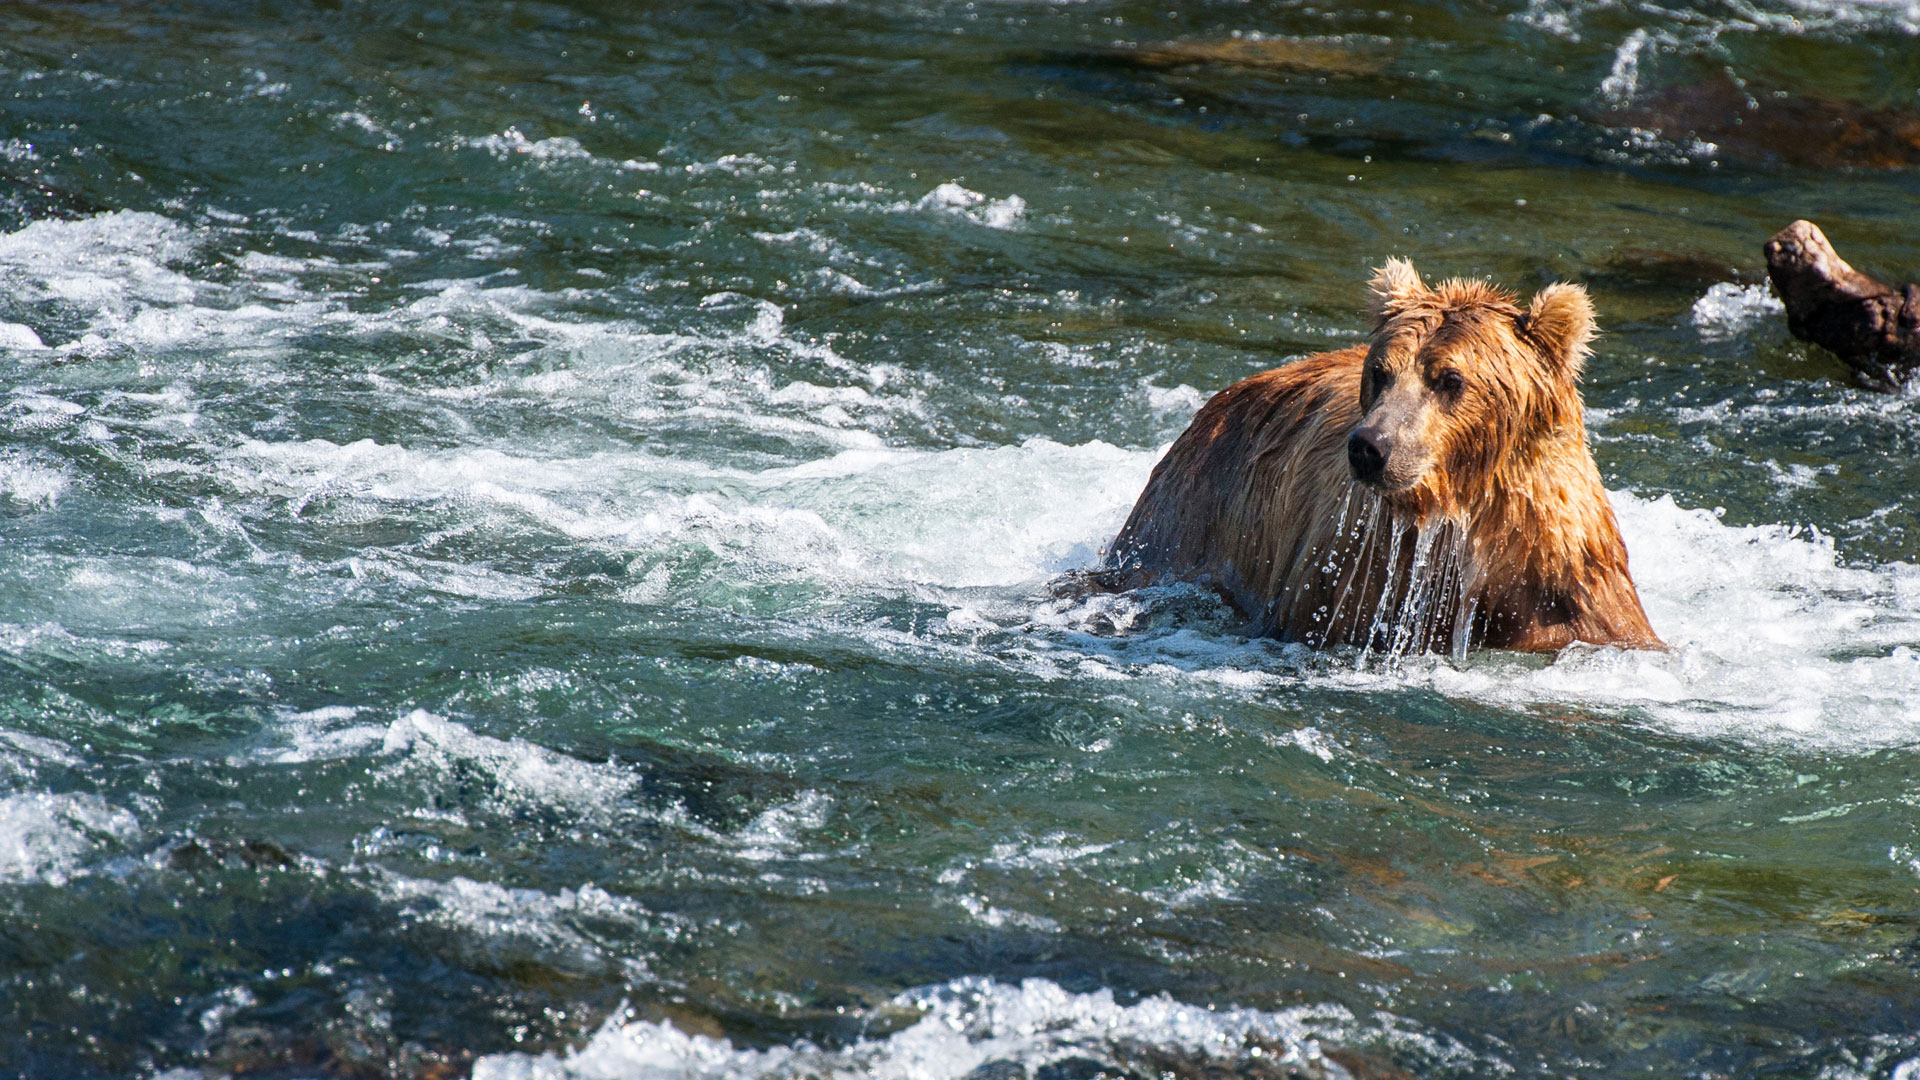 Grizzly bear in the river, Canada